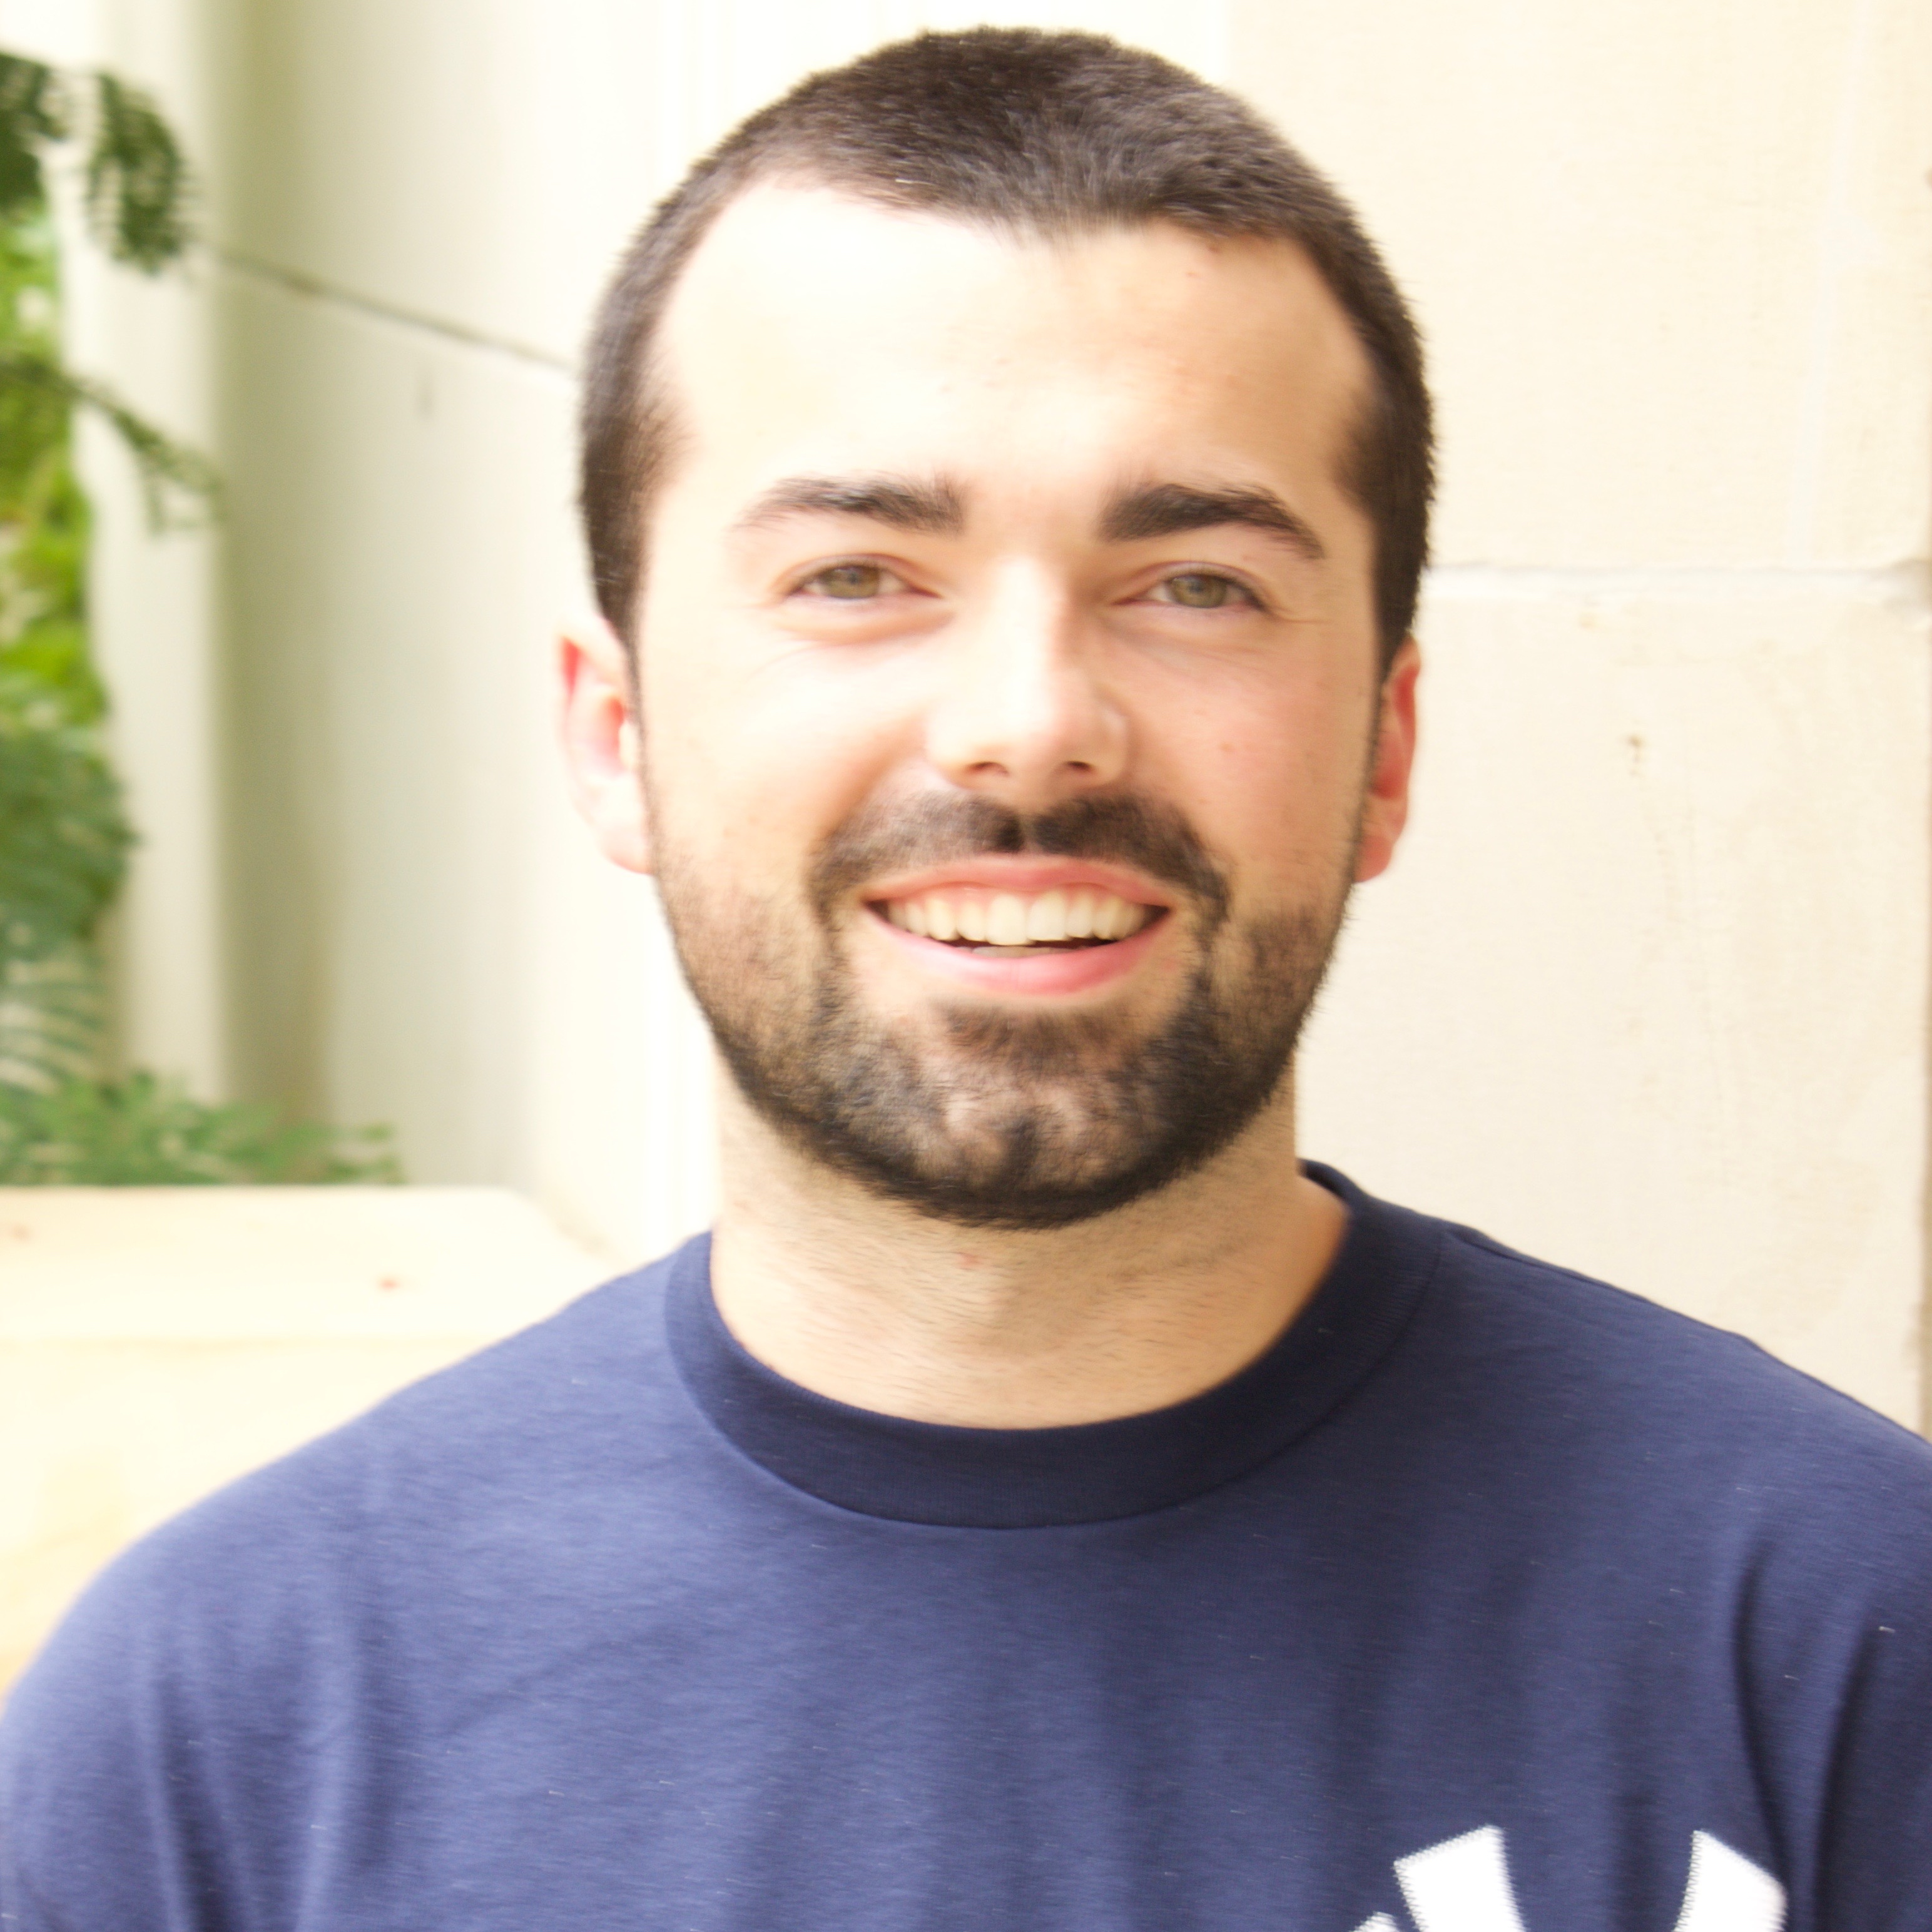 Headshot of DWRL Staffer KJ Schaeffner